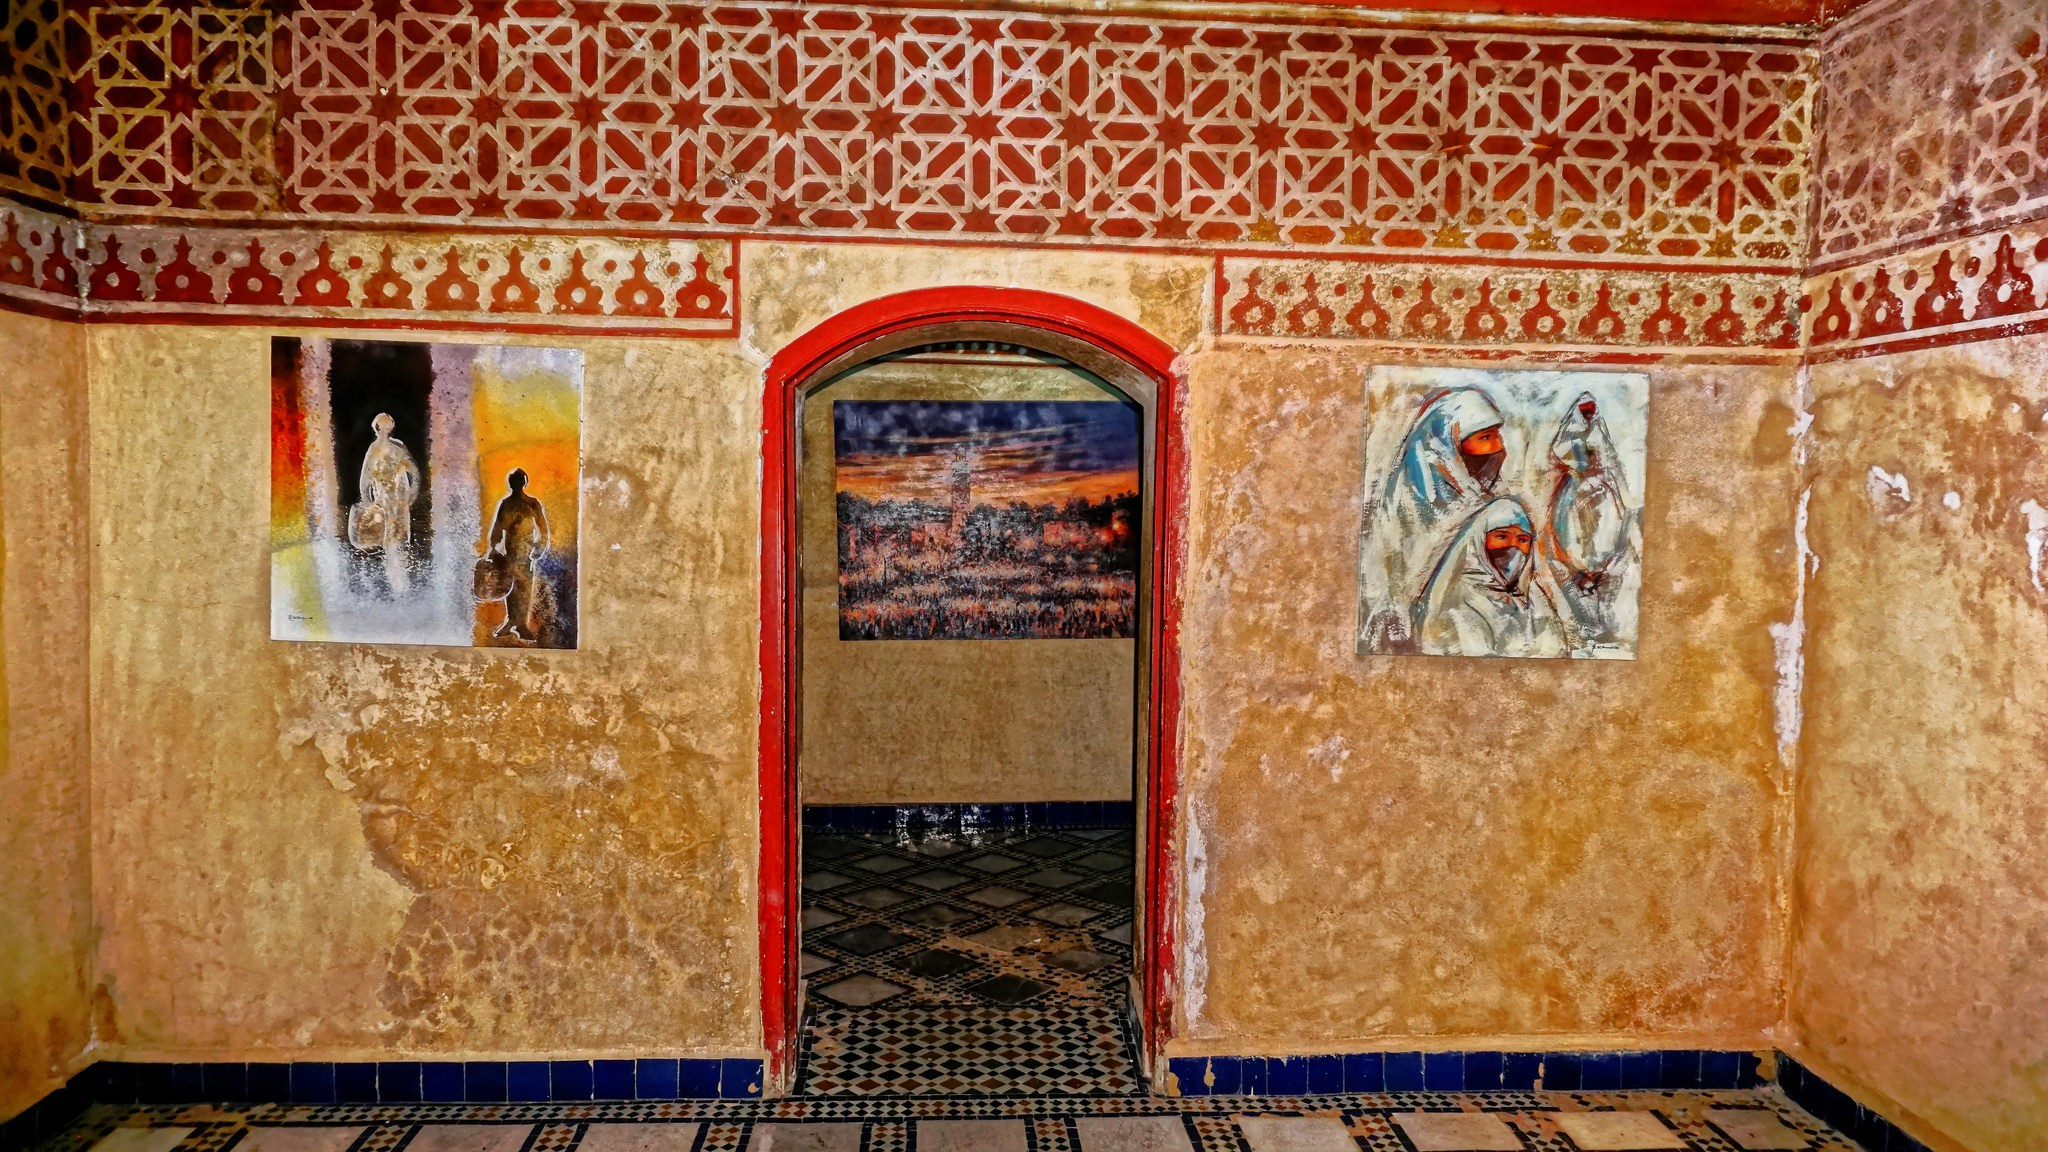 Bright artwork in the Marrakech Museum | © Miguel Discart / Flickr